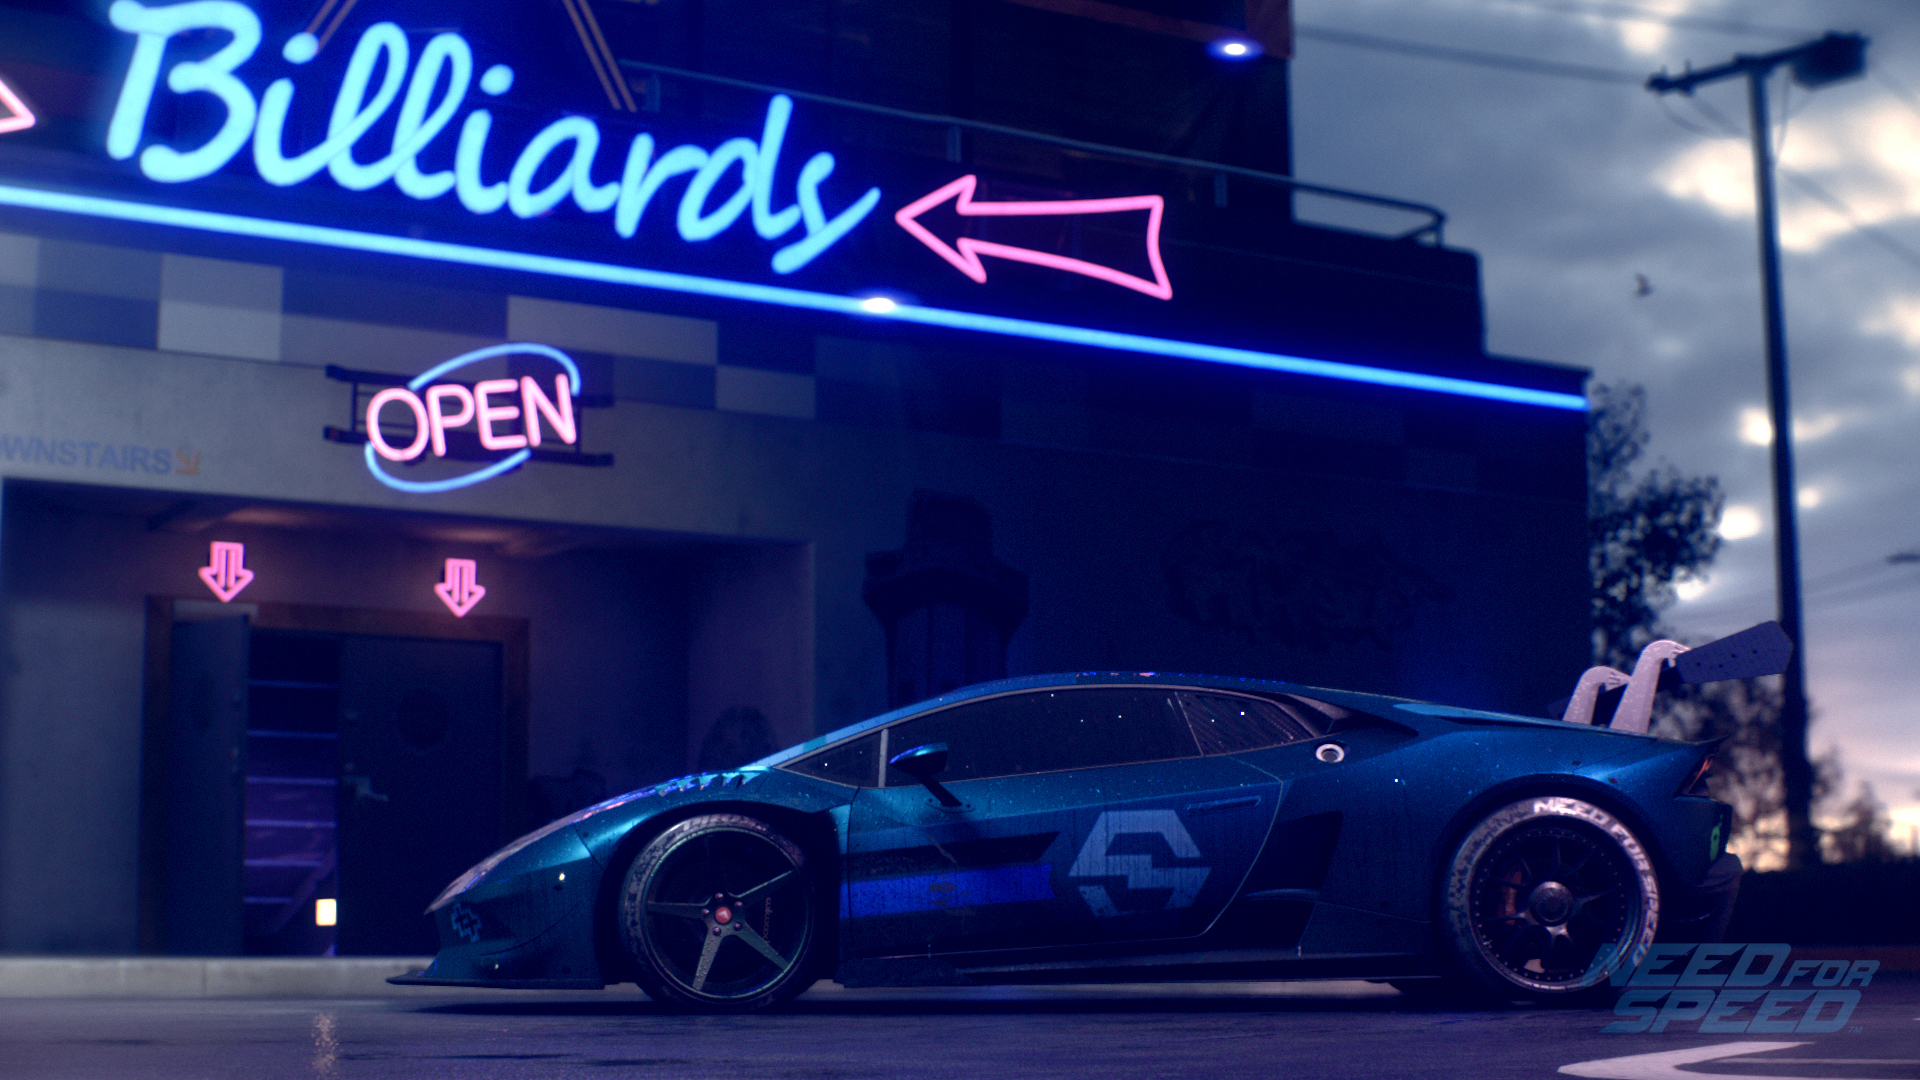 Lamborghini-Hurac%C3%A1n-LP-610-4 Fabulous Lamborghini Huracan Need for Speed 2015 Cars Trend